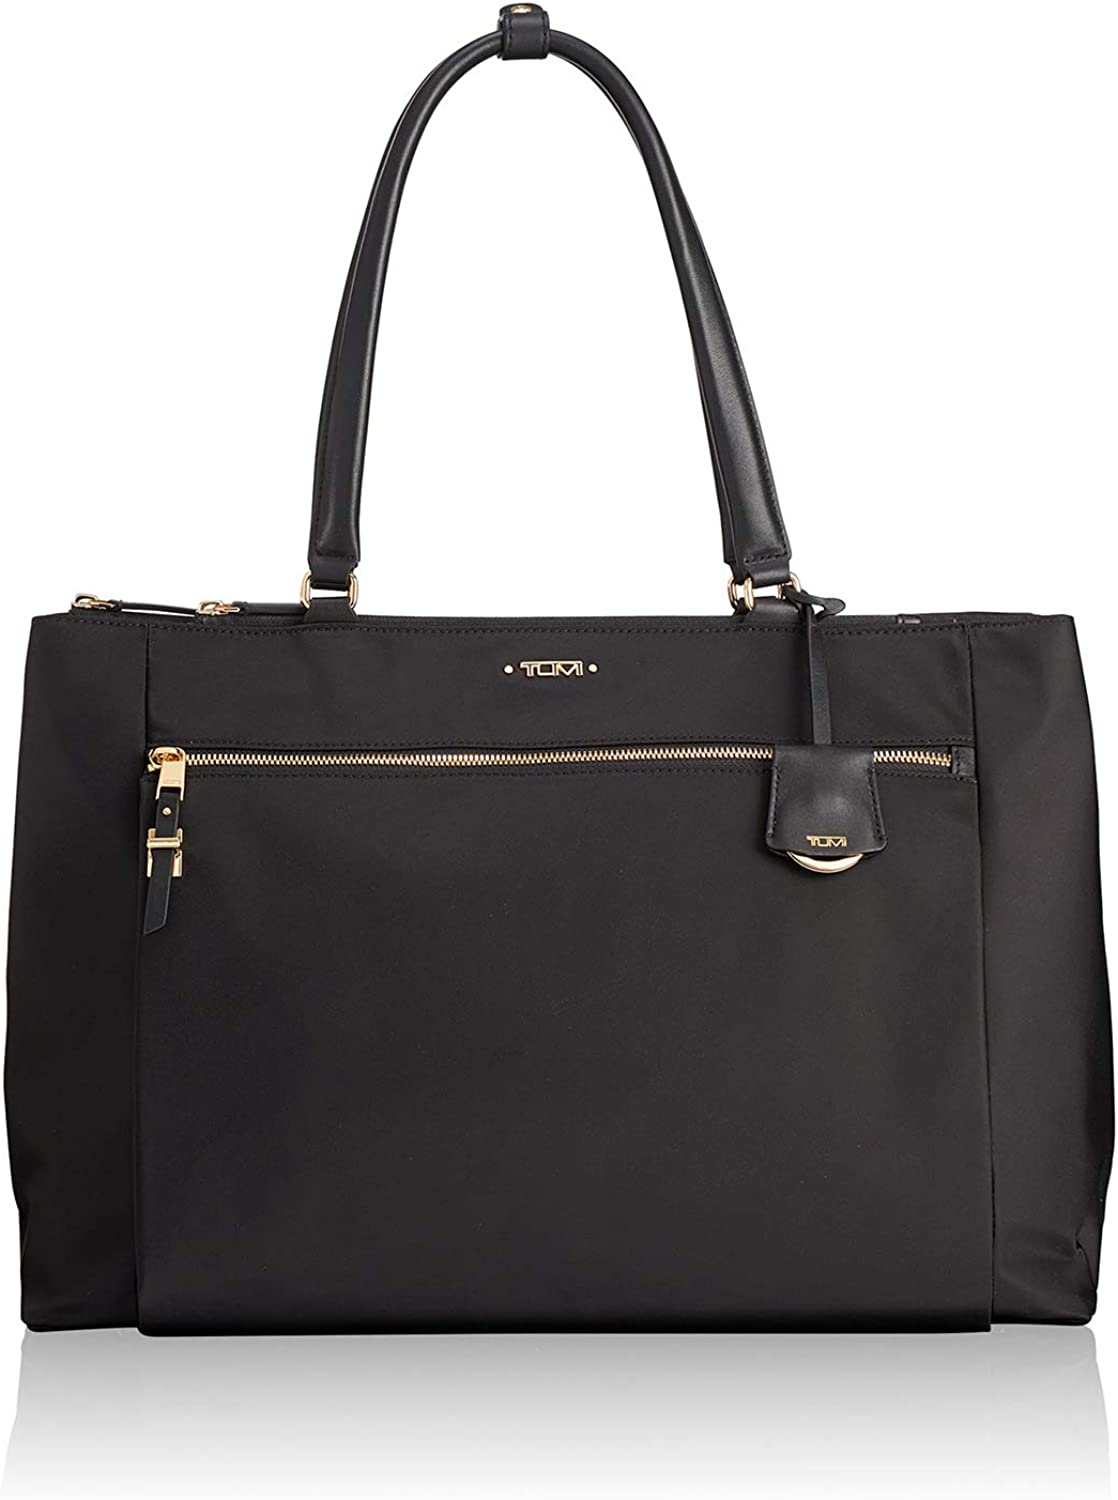 TUMI - Voyageur Sheryl Business Laptop Tote - 14 Inch Computer Bag for Women